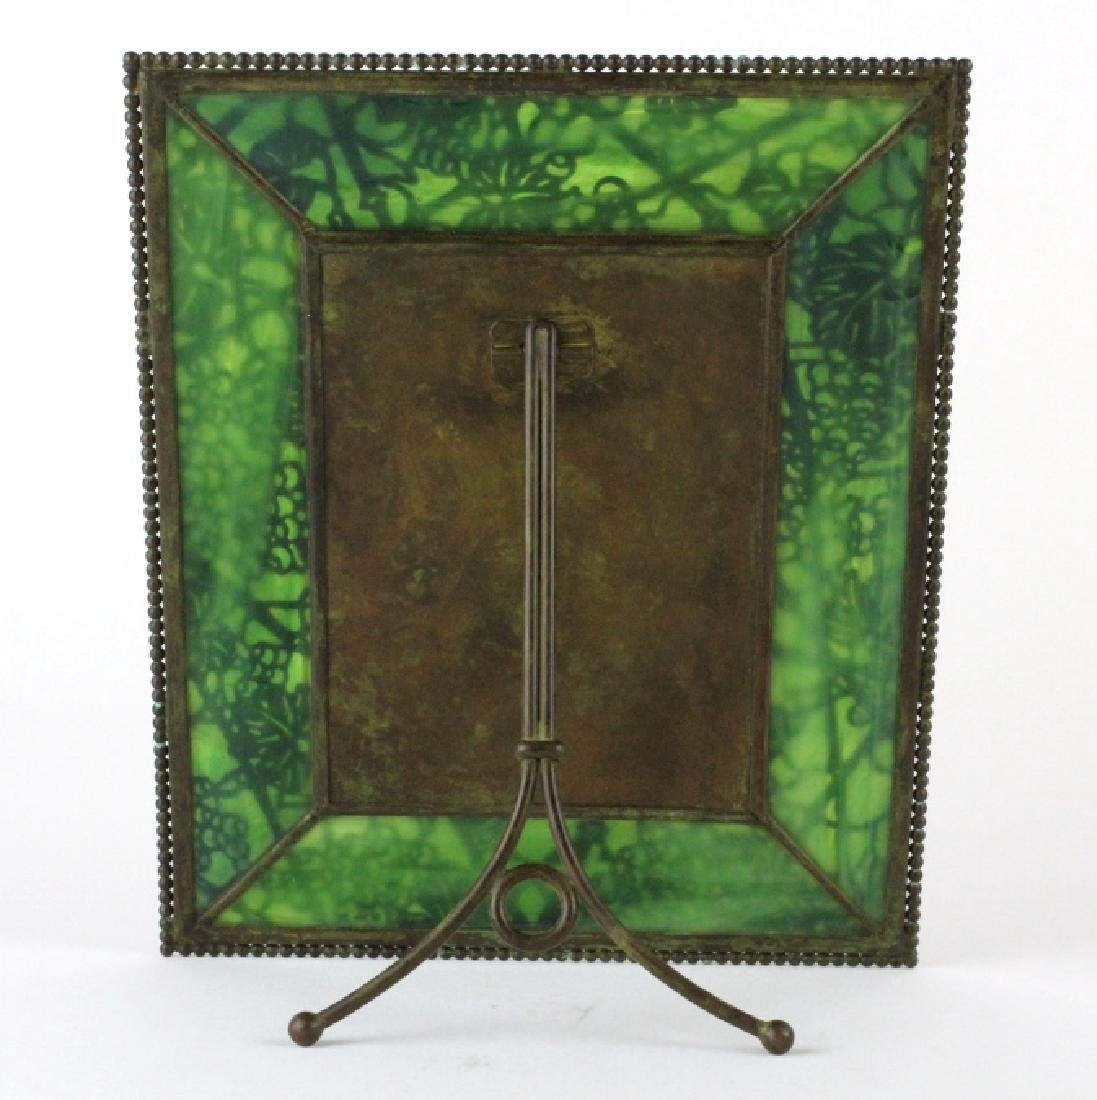 Tiffany Studios Grapevine Glass Picture Frame - 6